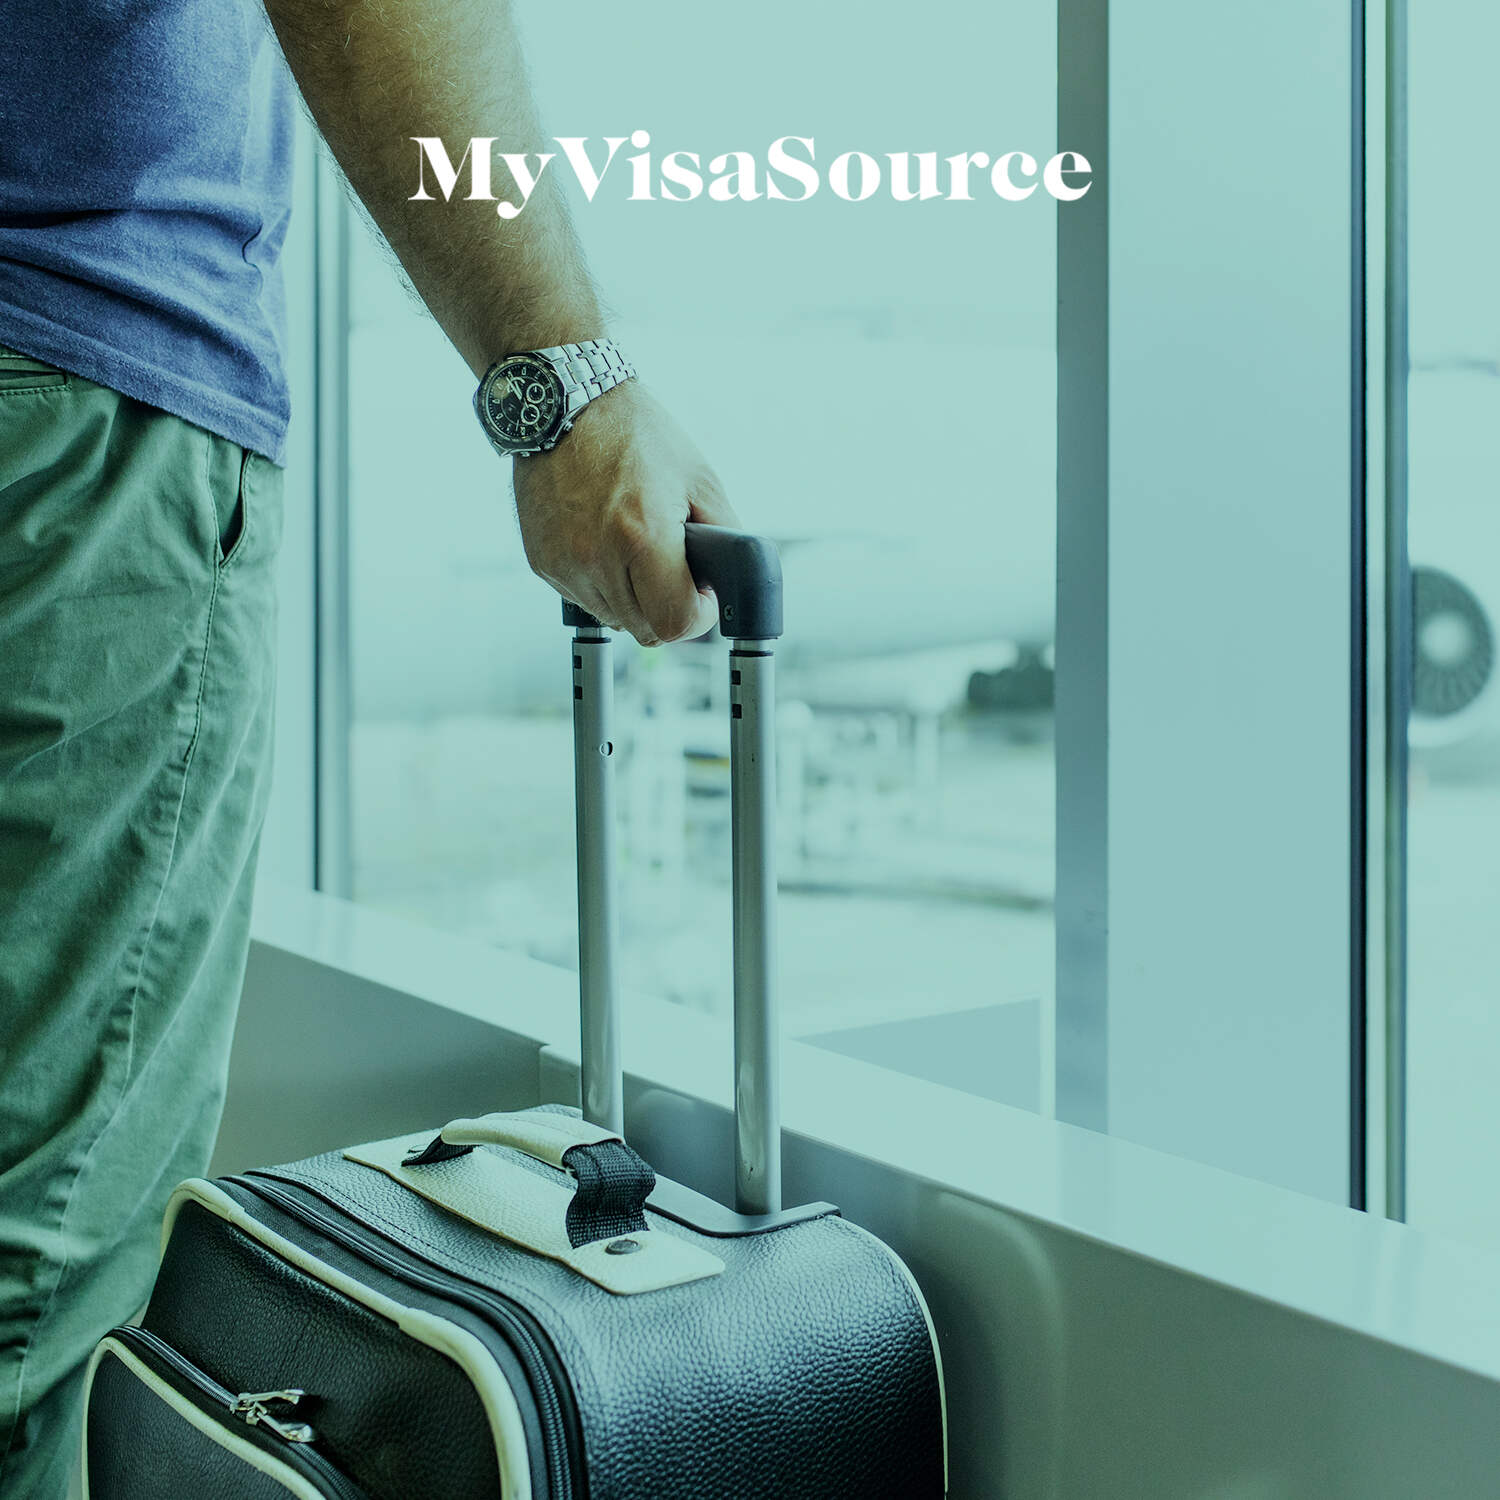 man holding handle of luggage waiting for his plane my visa source